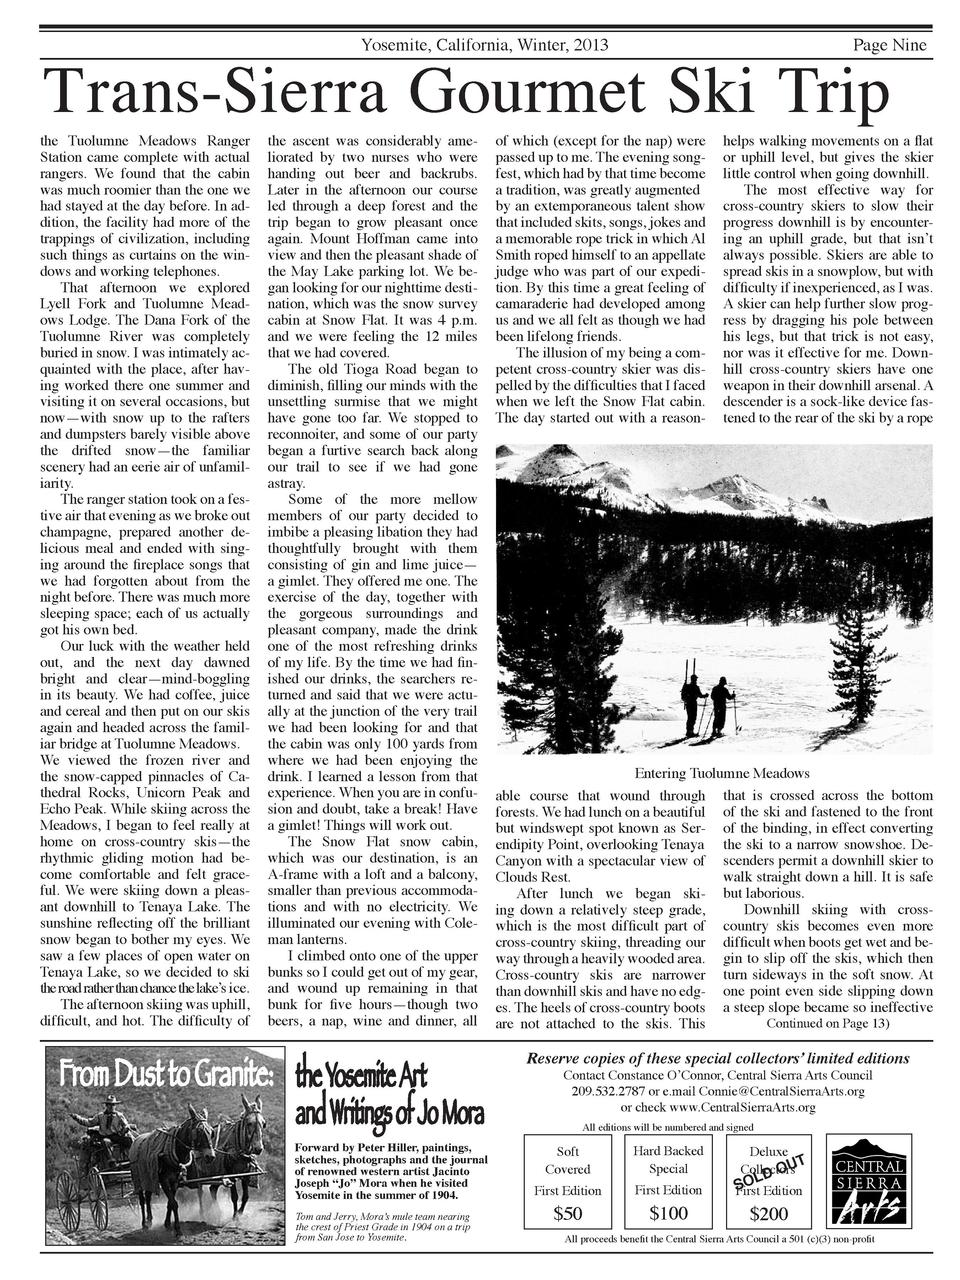 Trans-Sierra Gourmet Ski Trip Yosemite, California, Winter, 2013  the Tuolumne Meadows Ranger Station came complete with a...